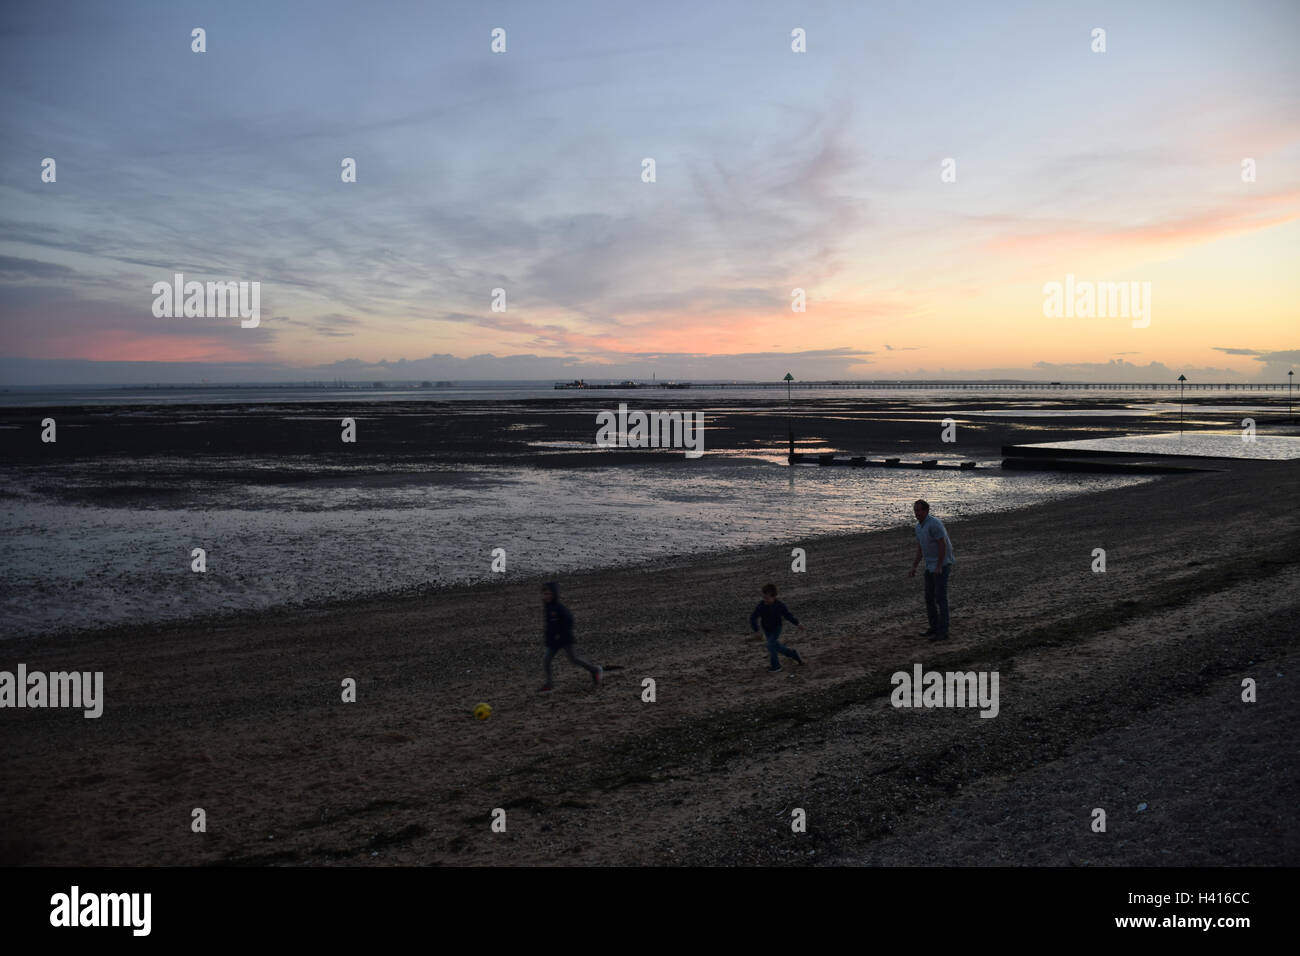 Southend-on-Sea beach at sunset, Essex Stock Photo